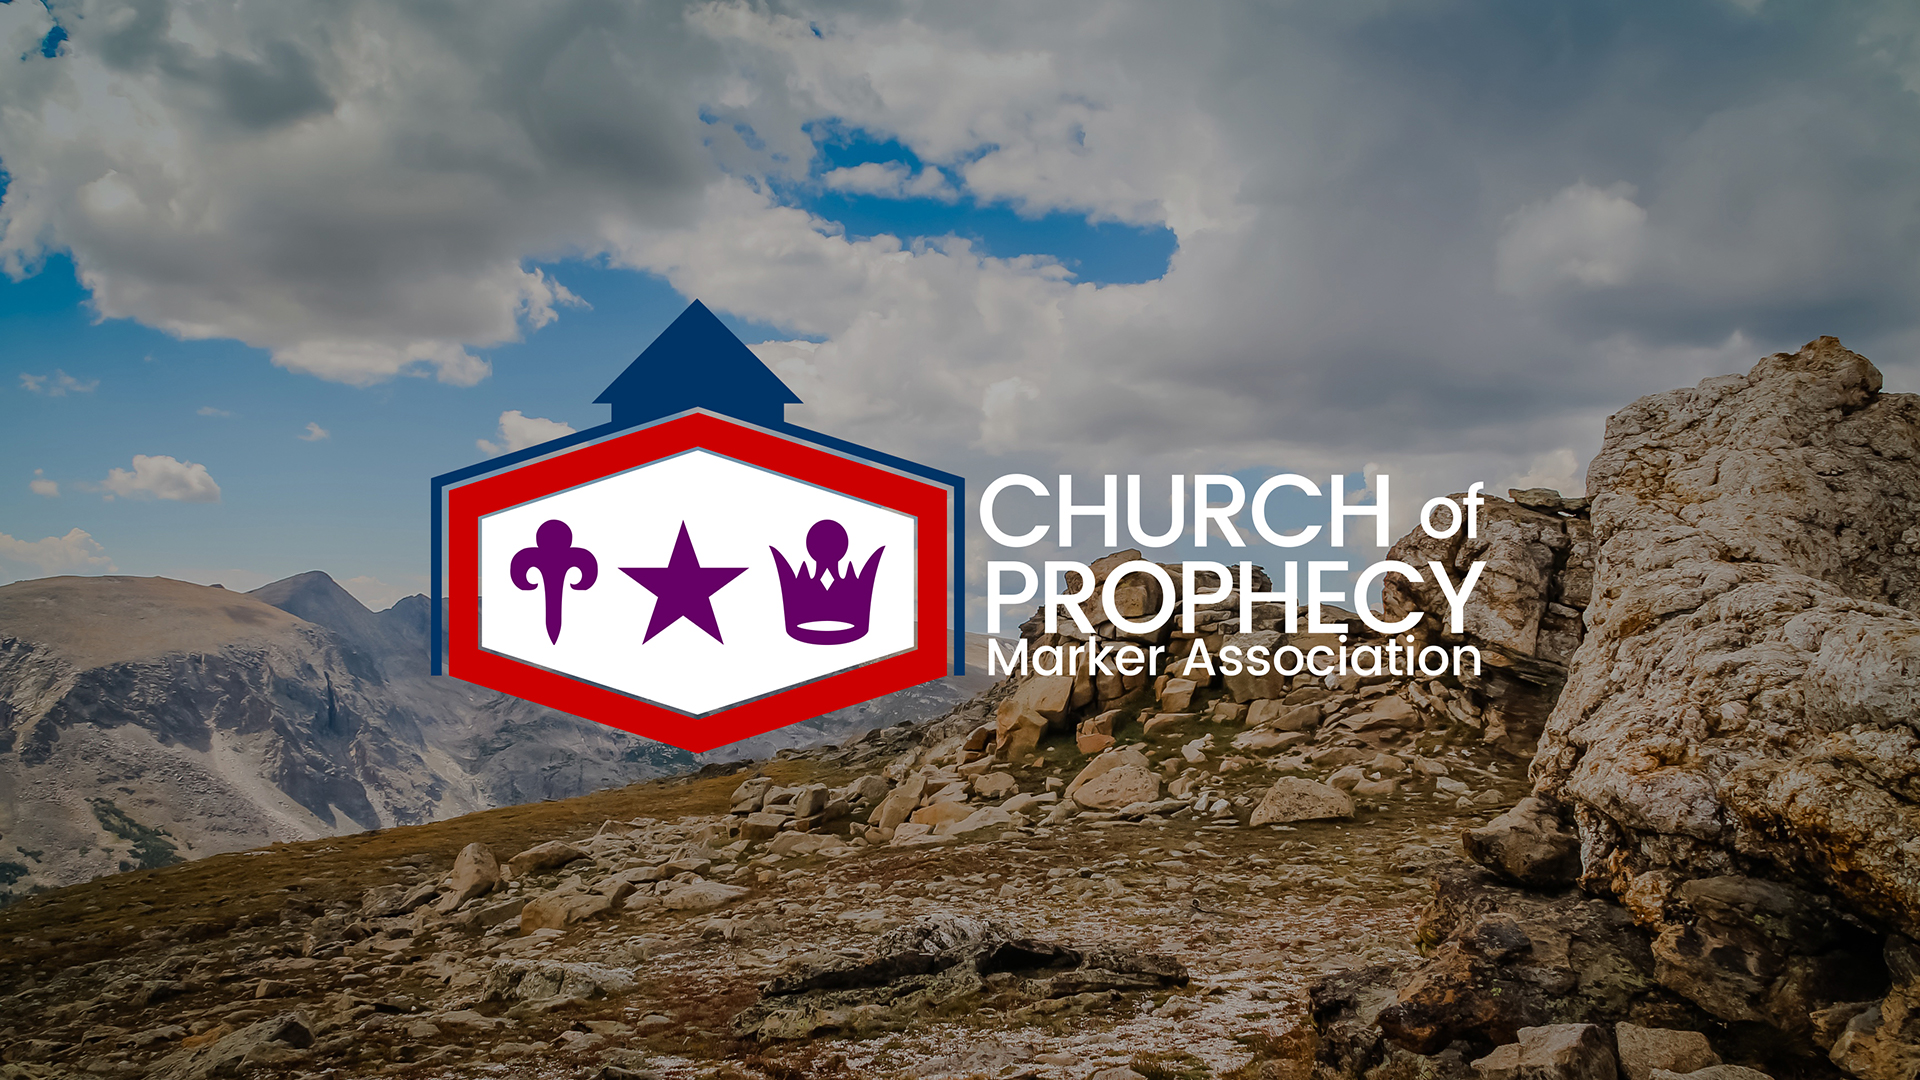 Church of Prophecy Marker Association